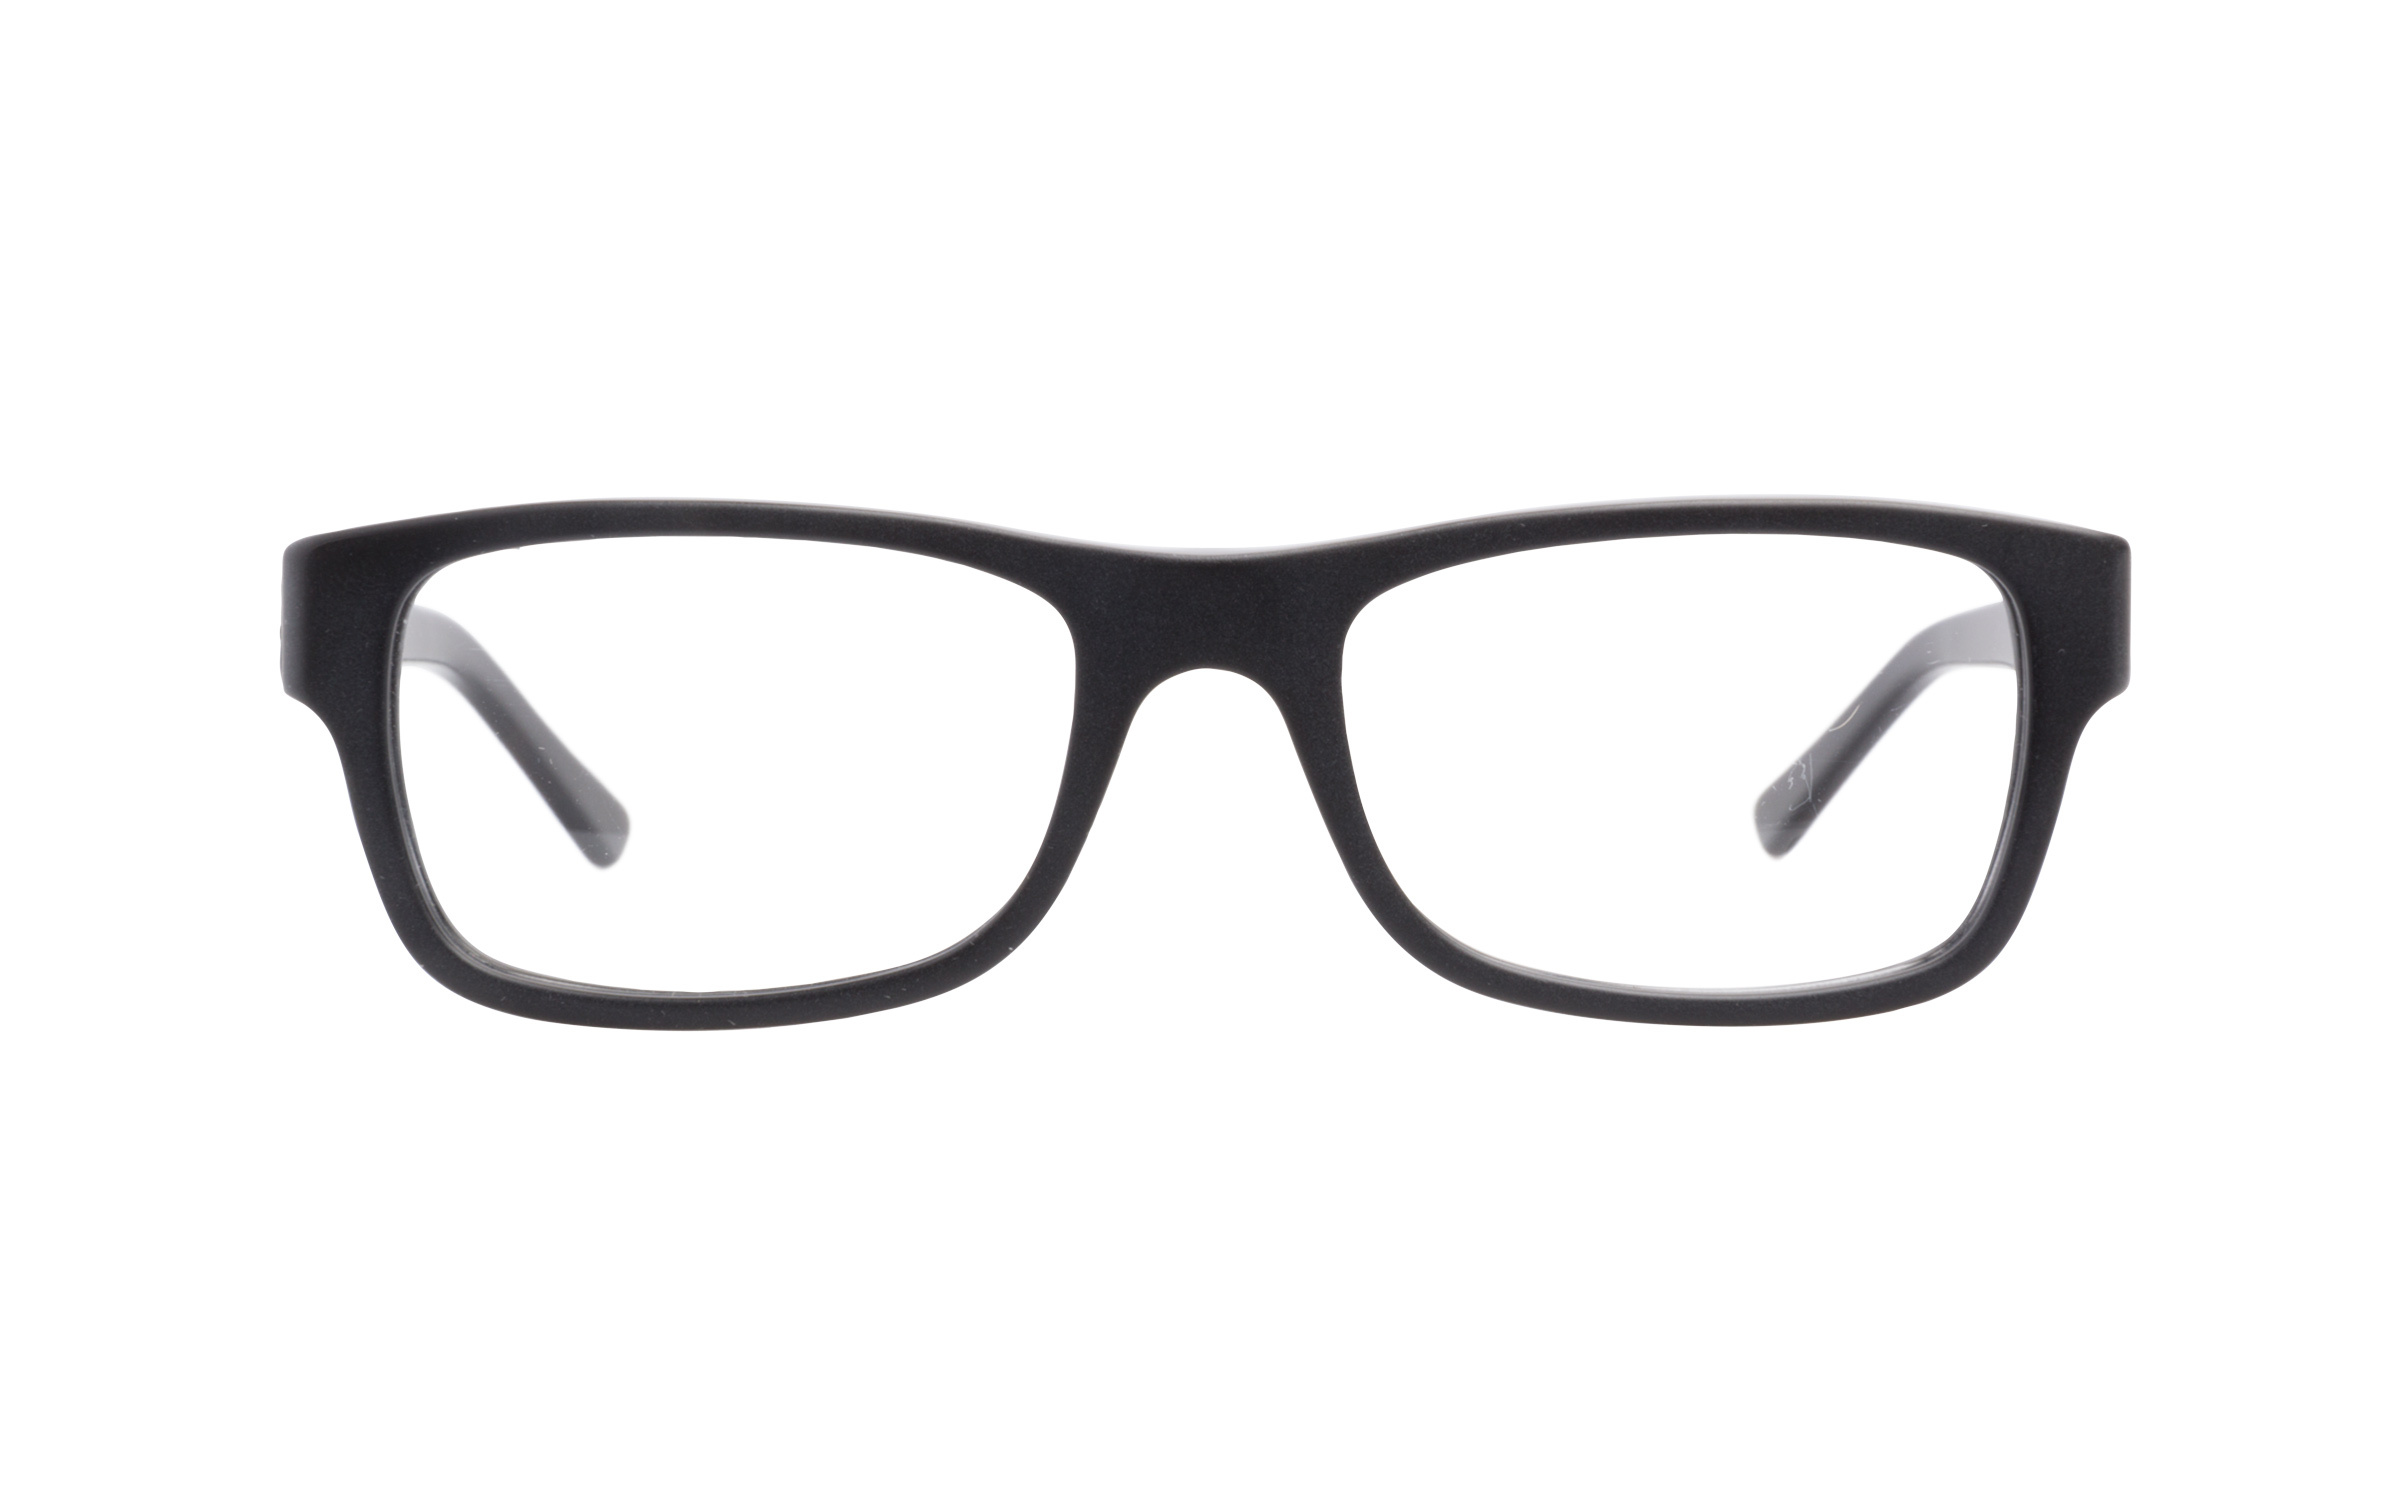 Luxottica Ray-Ban RB5268 5119 50 Eyeglasses and Frame in Sand Black | Metal - Online Coastal